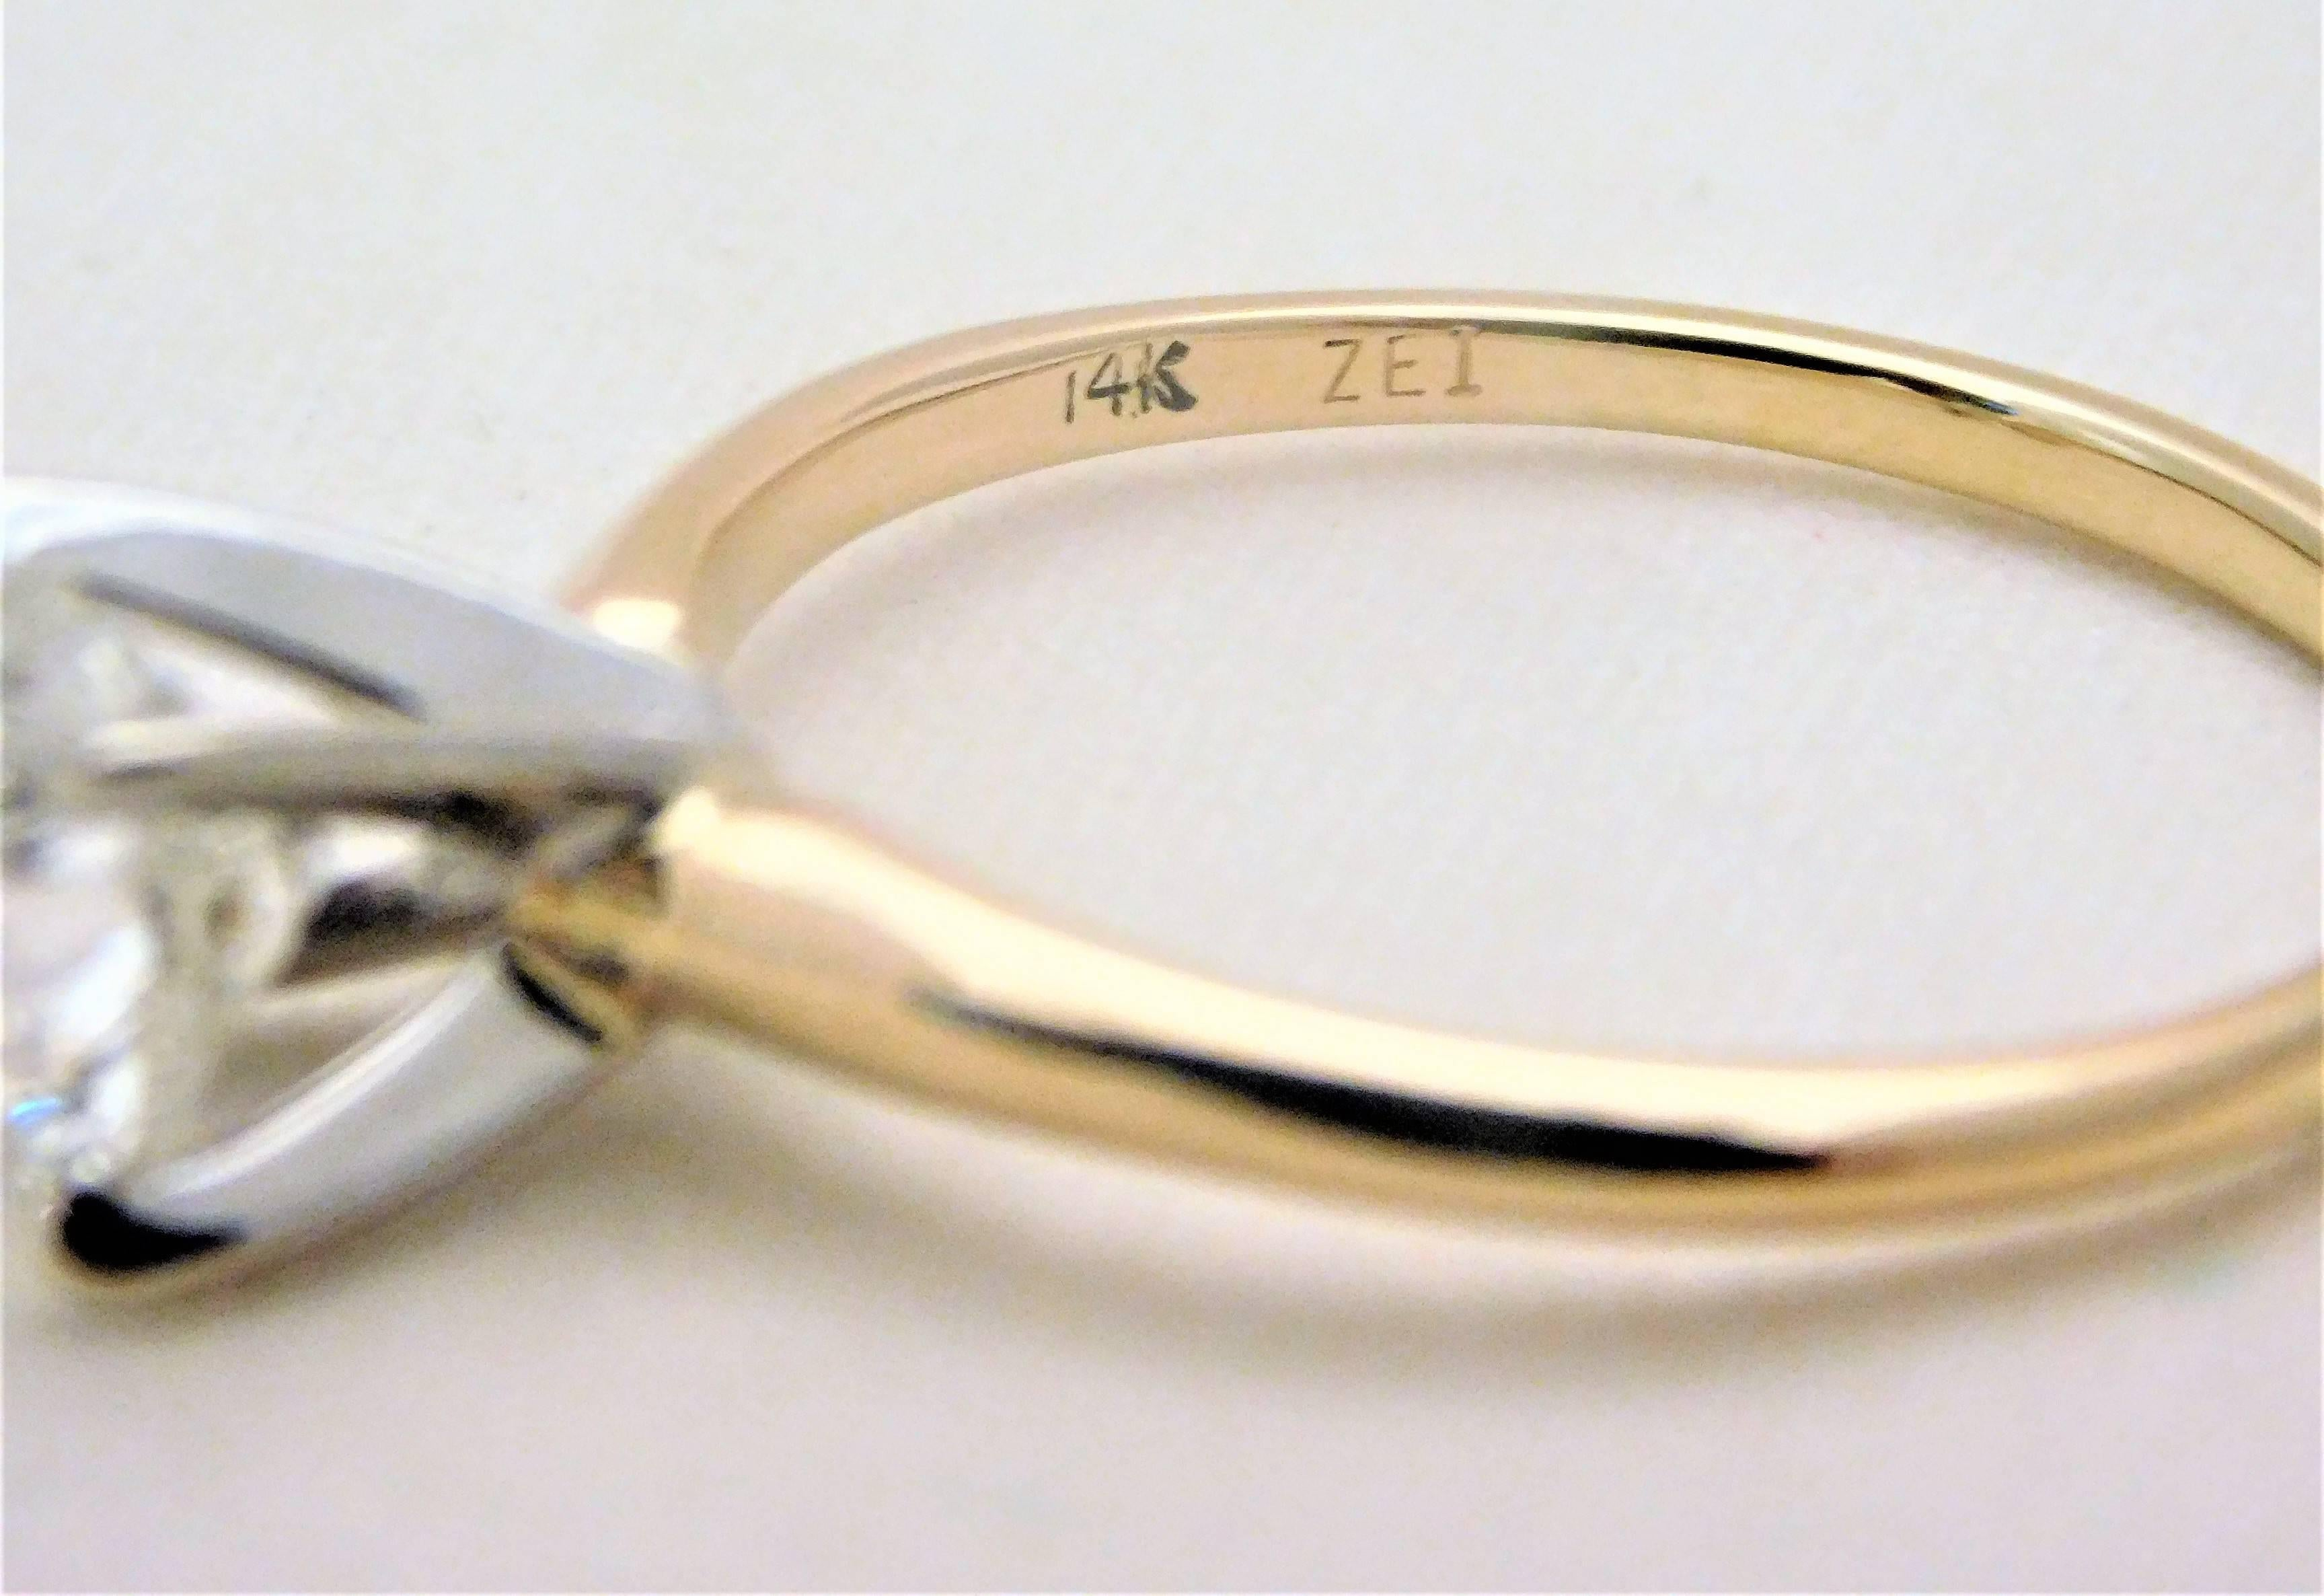 of tag happy wedding difference unique slight trinity all with bands rings ring not different cartier out metal stand ideas unusual full tags tone does the vintage jewelry this however size tones male engagement